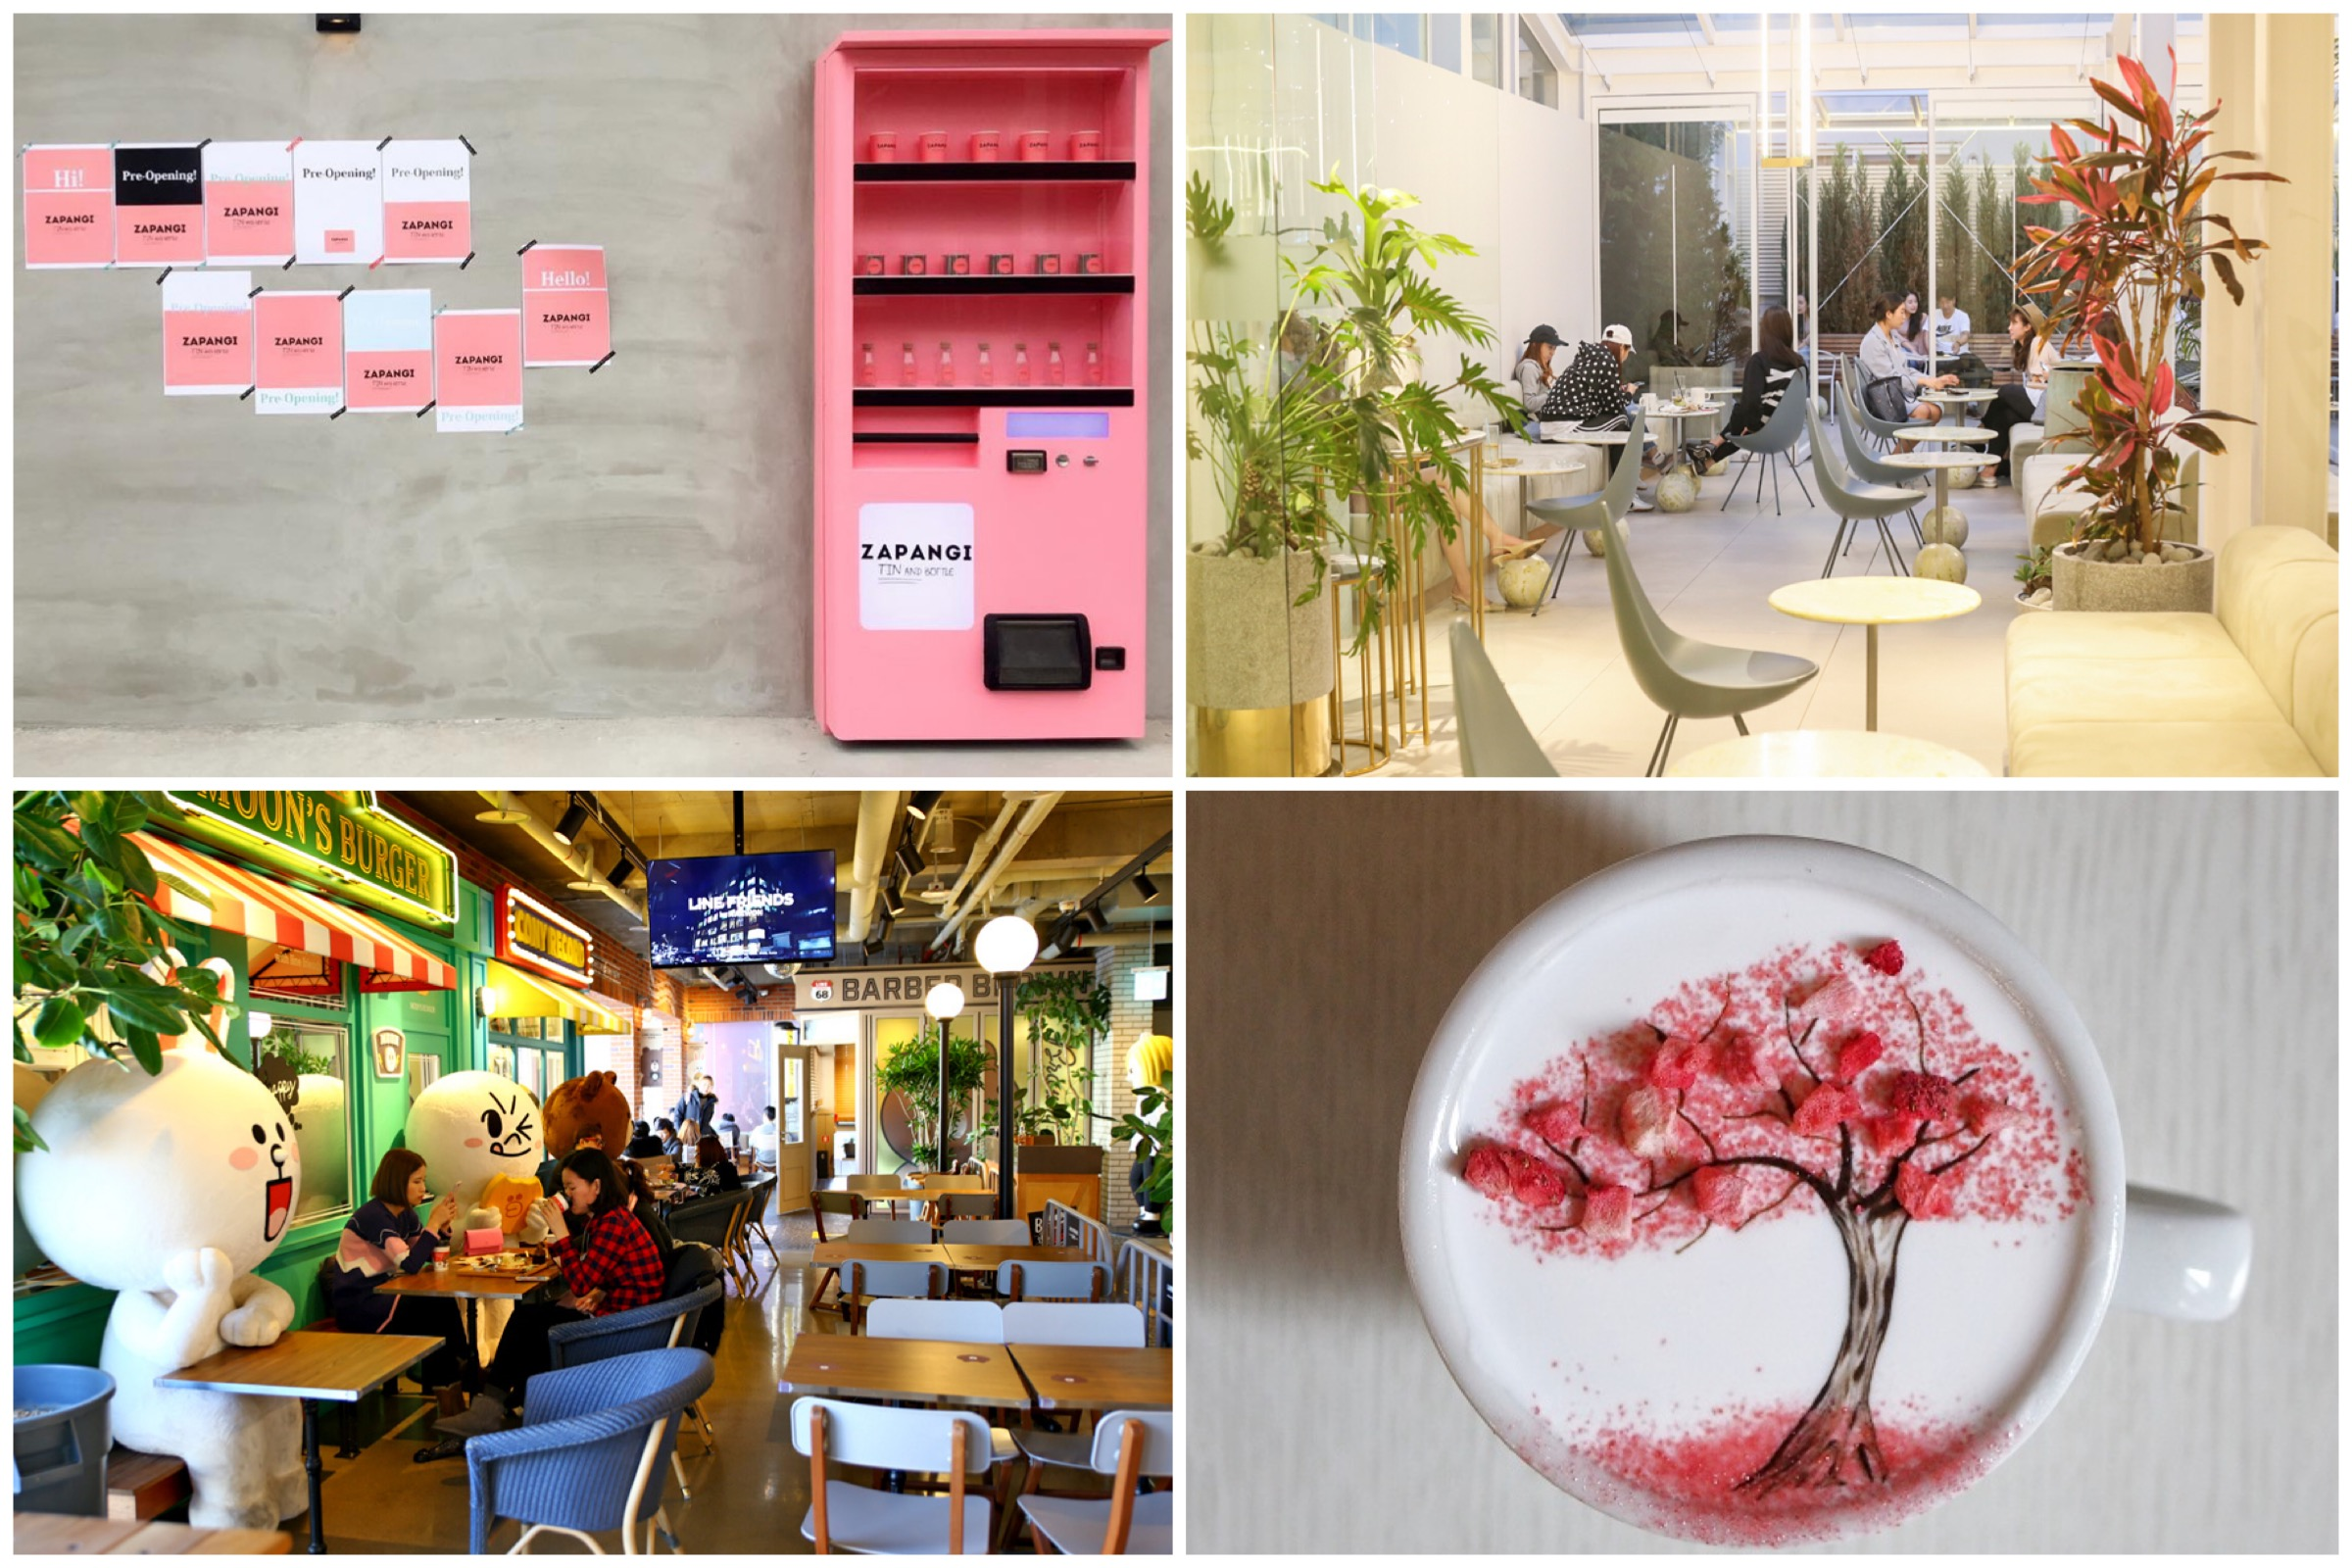 10 Most Instagrammable Cafes In Seoul Cafe Onion The Skyfarm And Zapangi Cafe Behind A Vending Machine Danielfooddiary Com